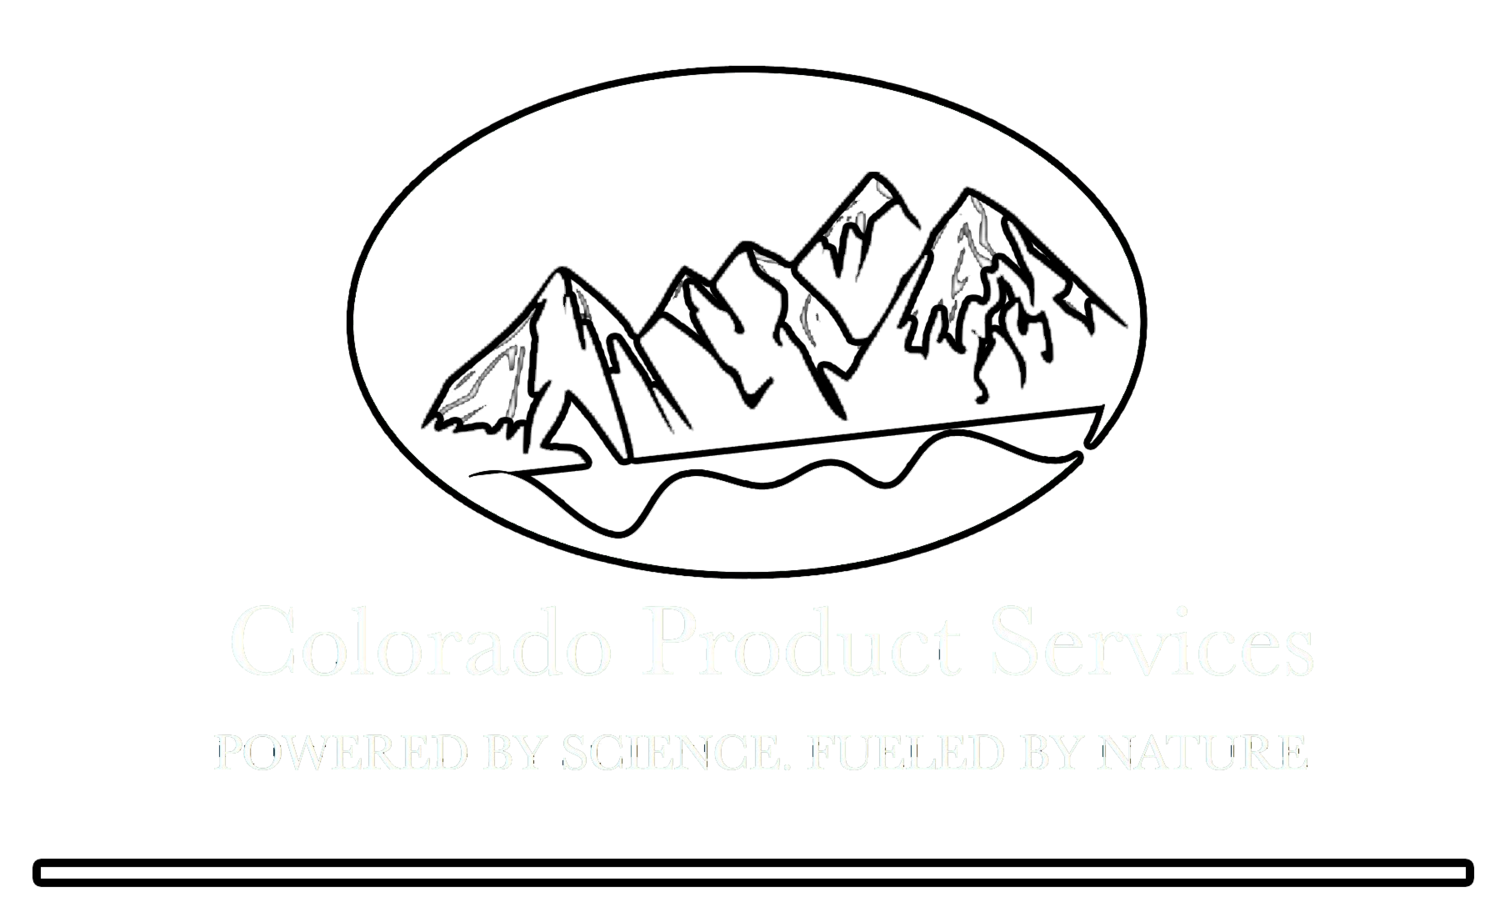 Colorado Product Services